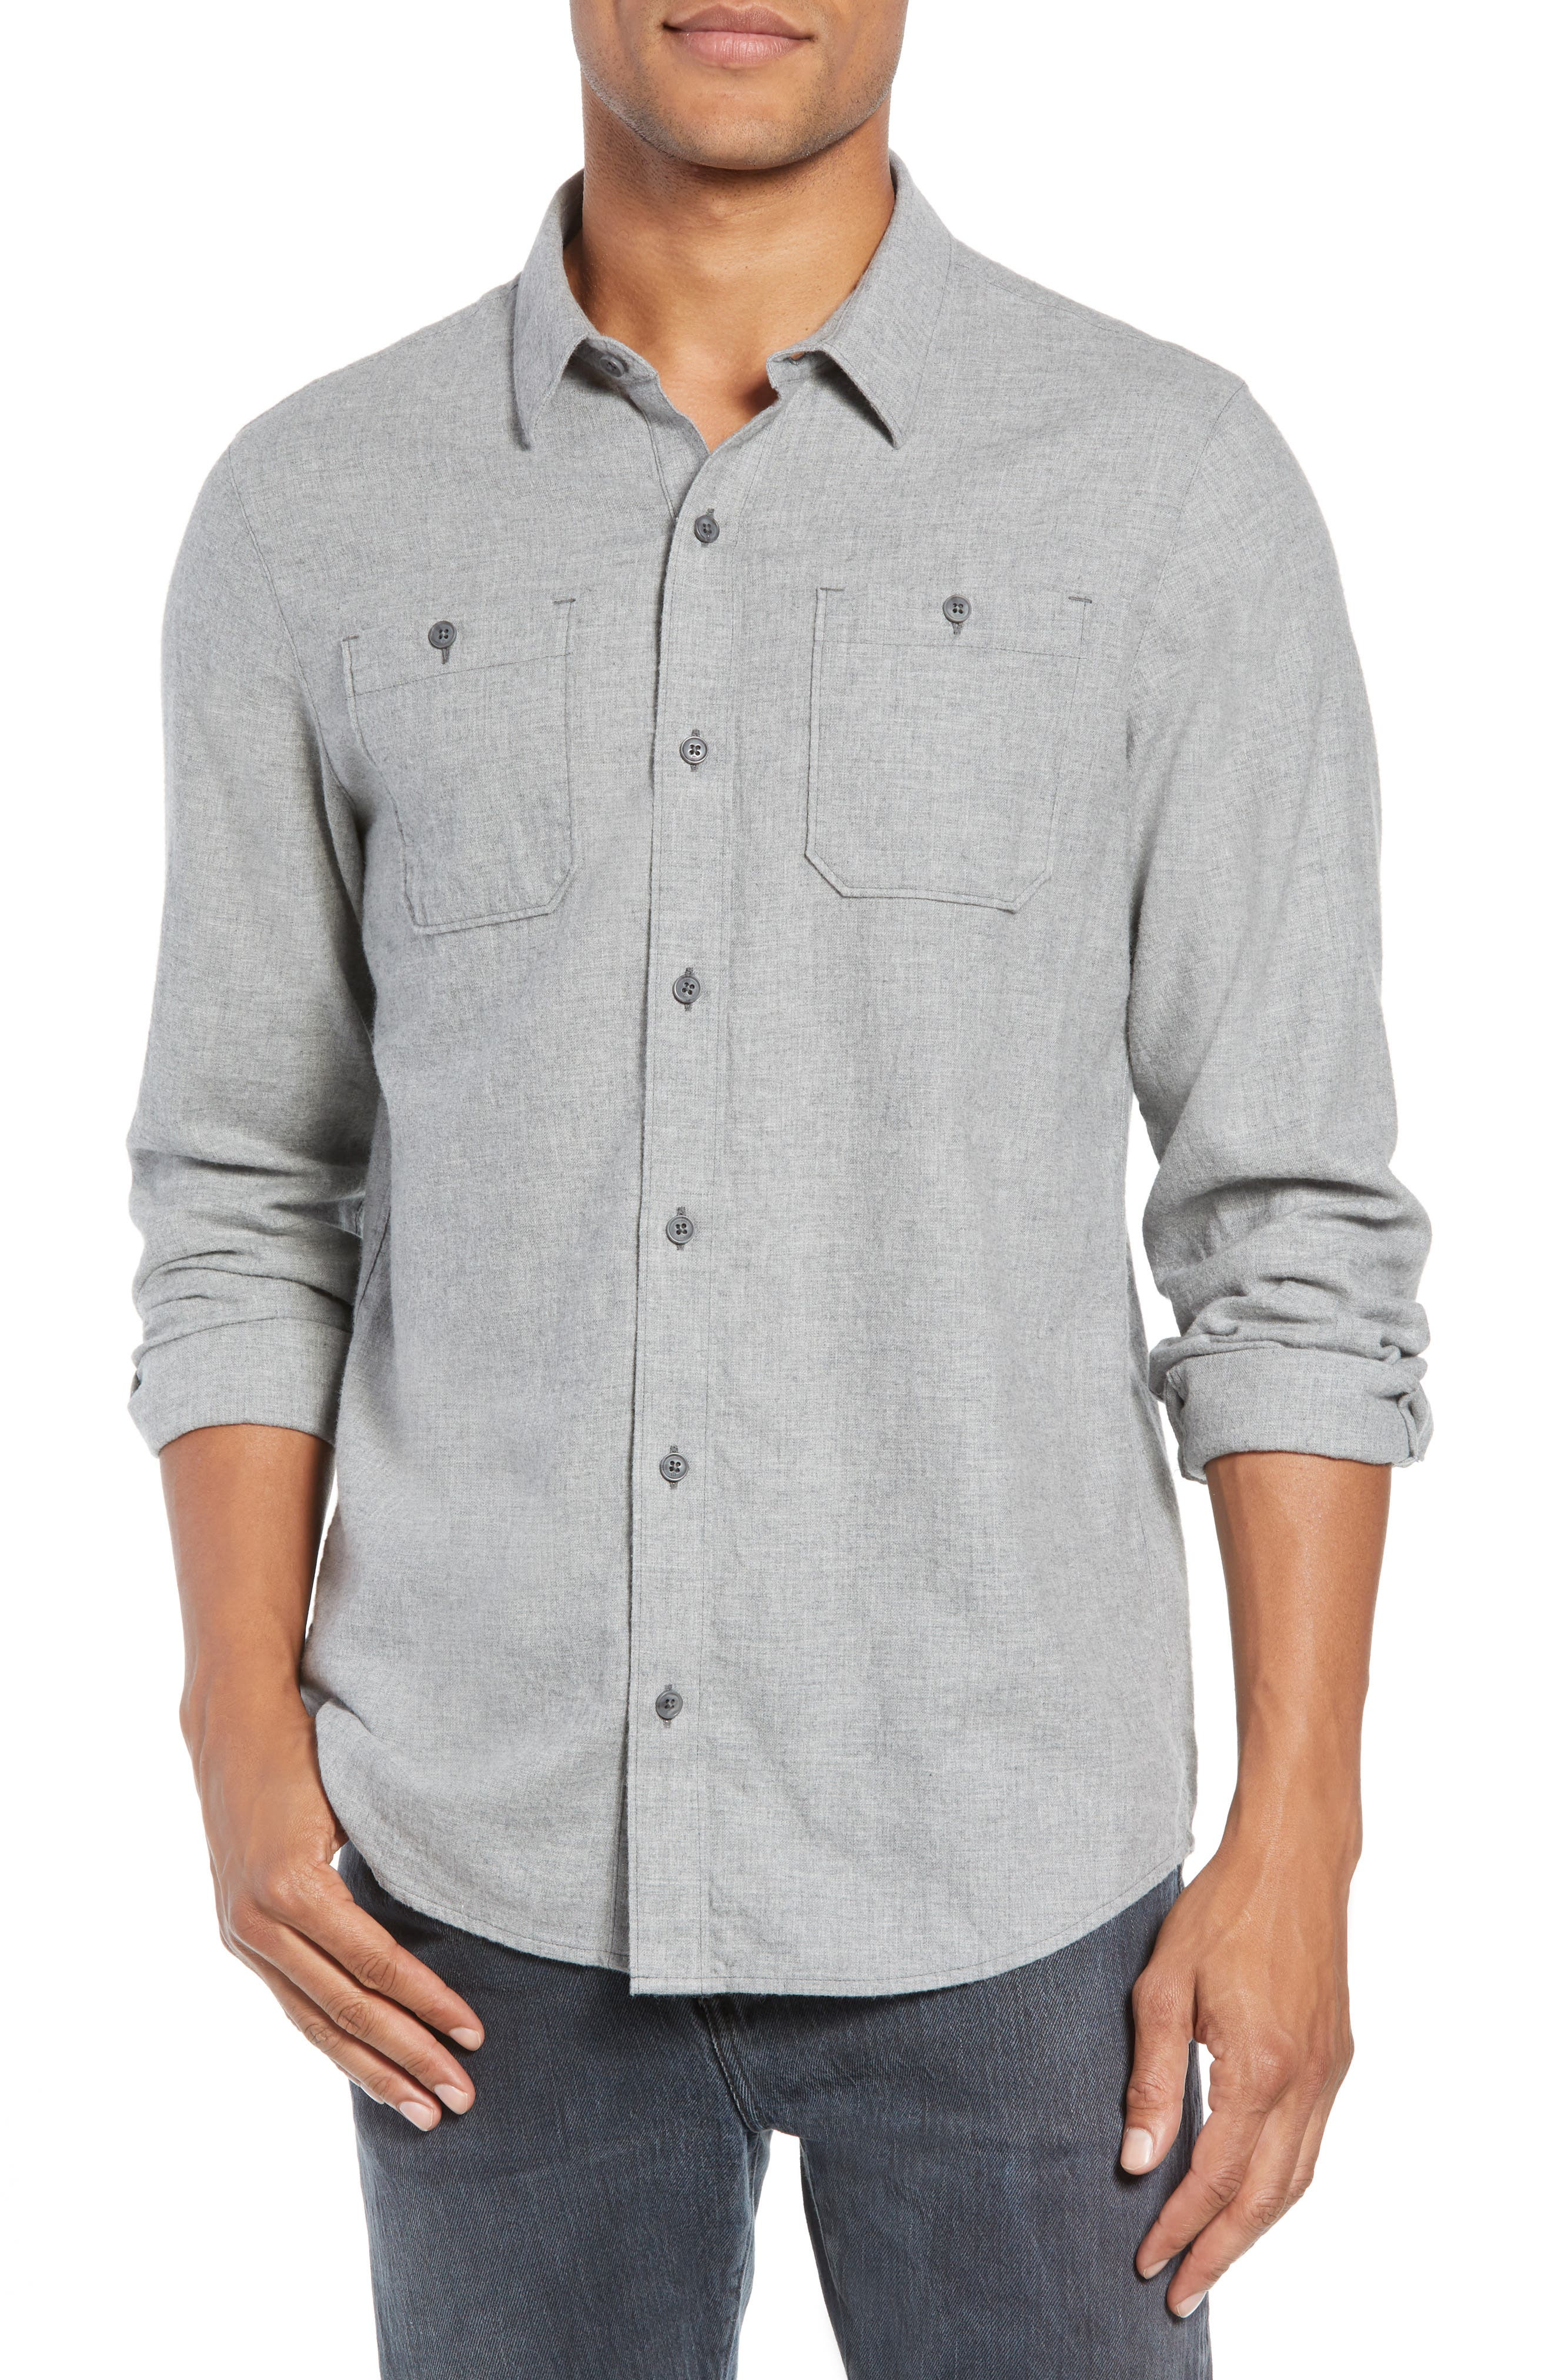 Hefe Regular Fit Flannel Sport Shirt,                             Main thumbnail 1, color,                             GREY QUITE SHADE